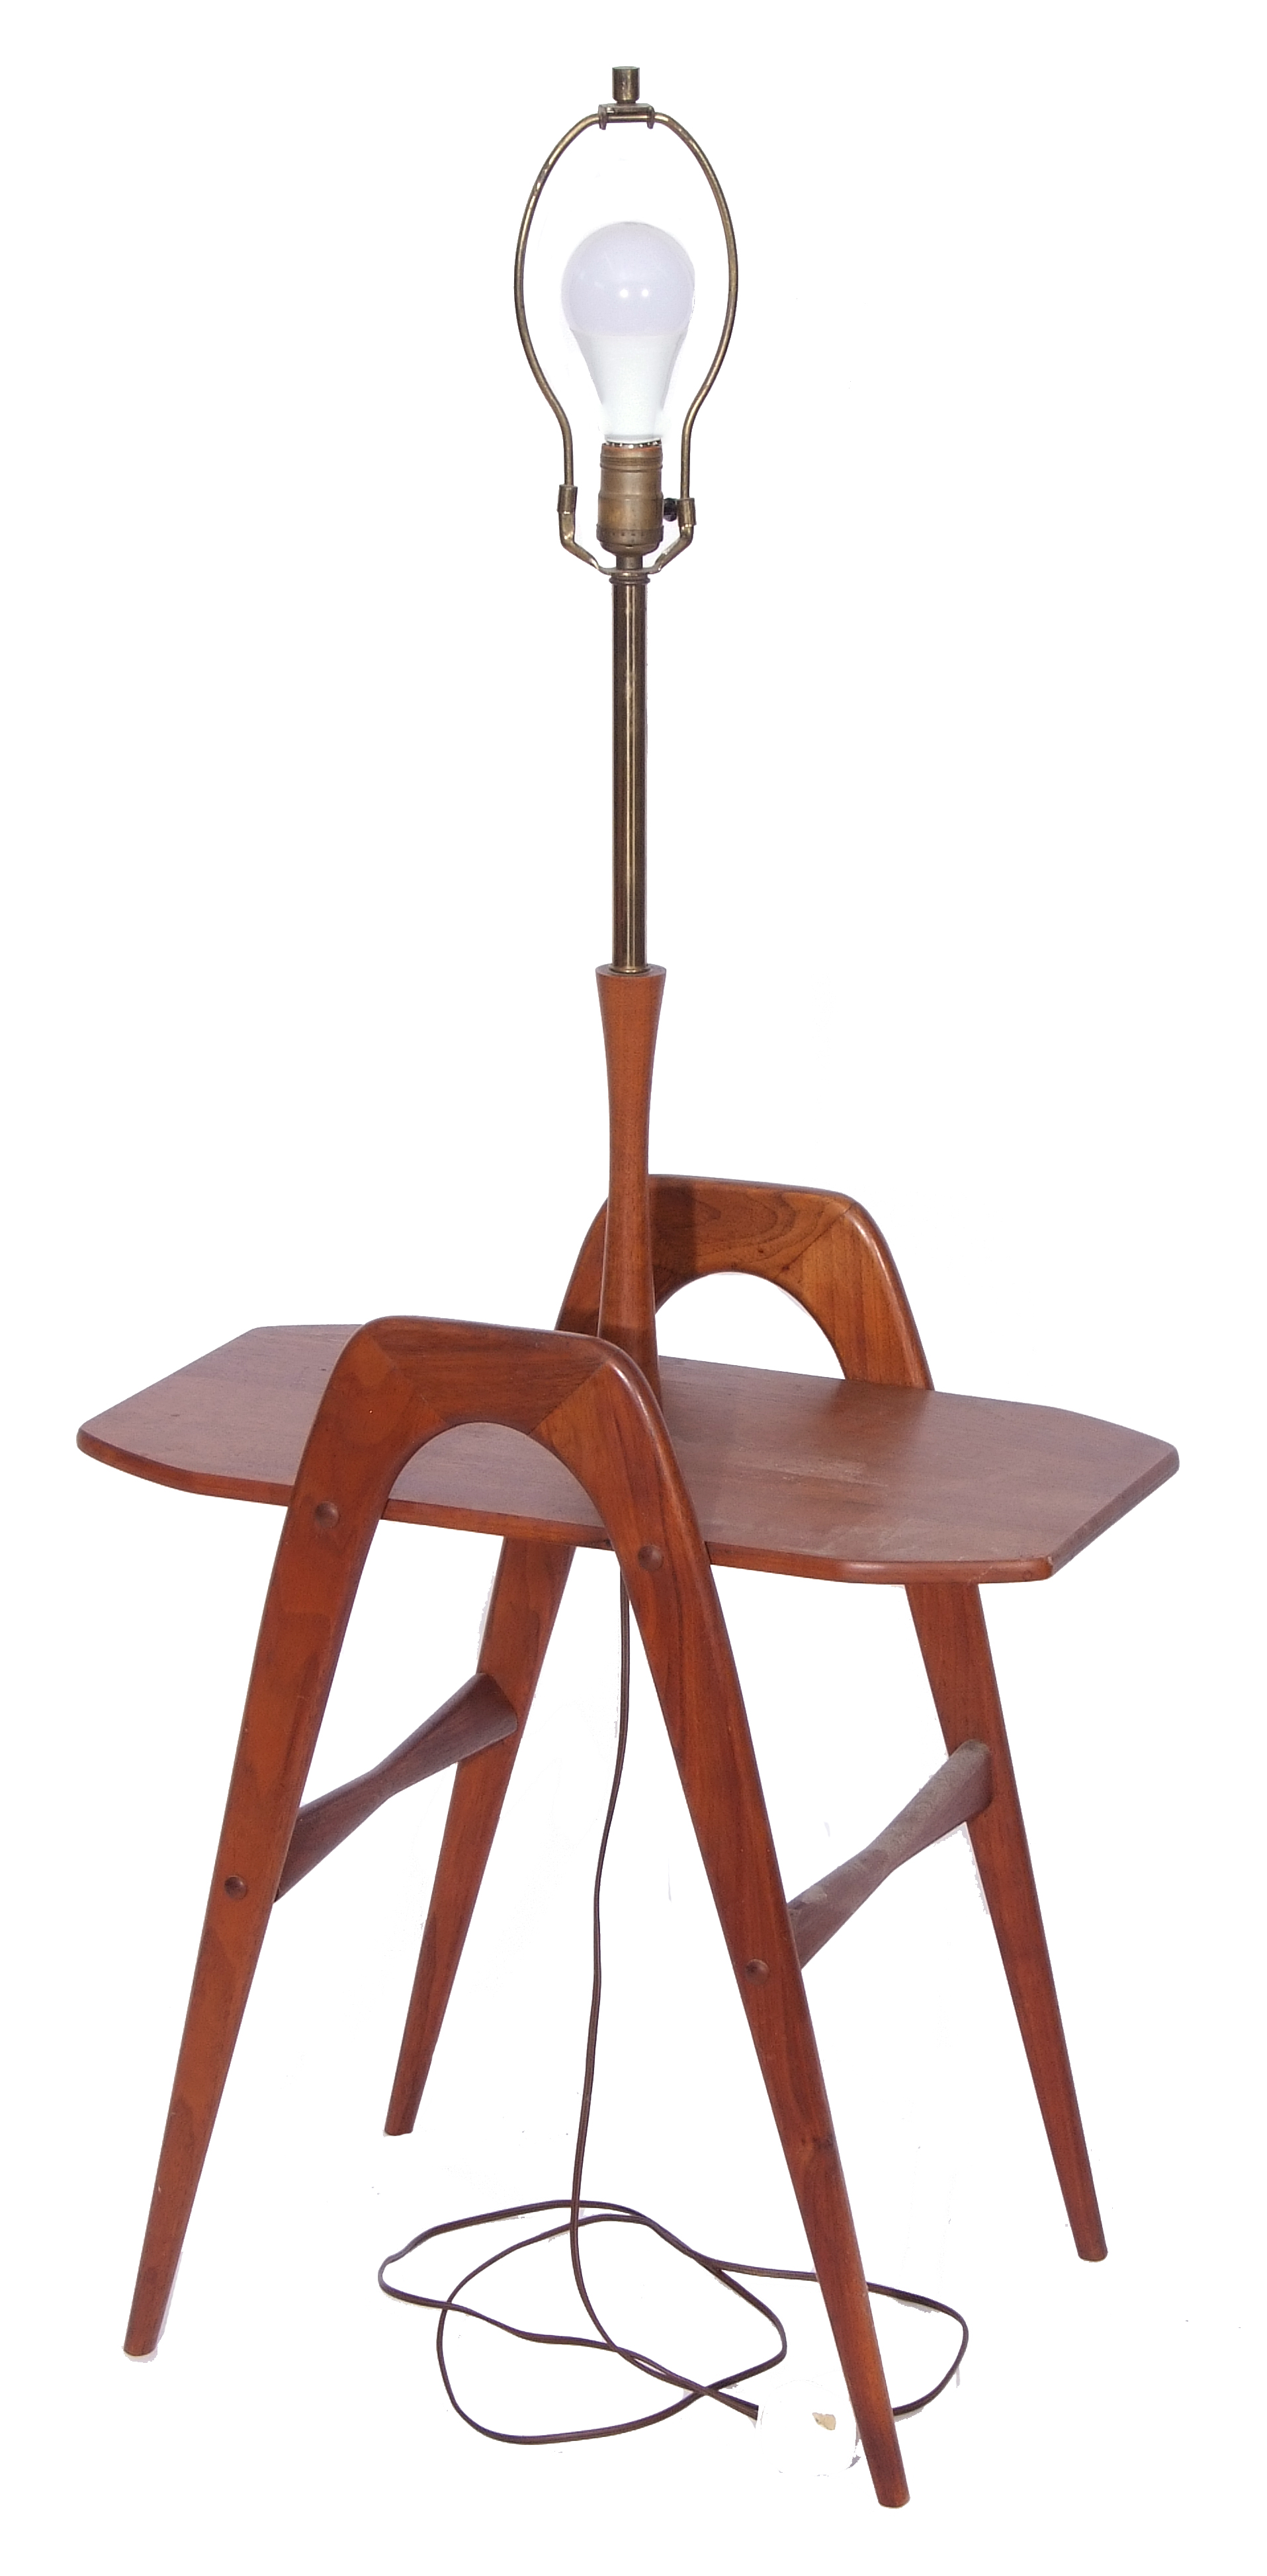 Circa 1960s Danish style magazine table with inset lamp holder